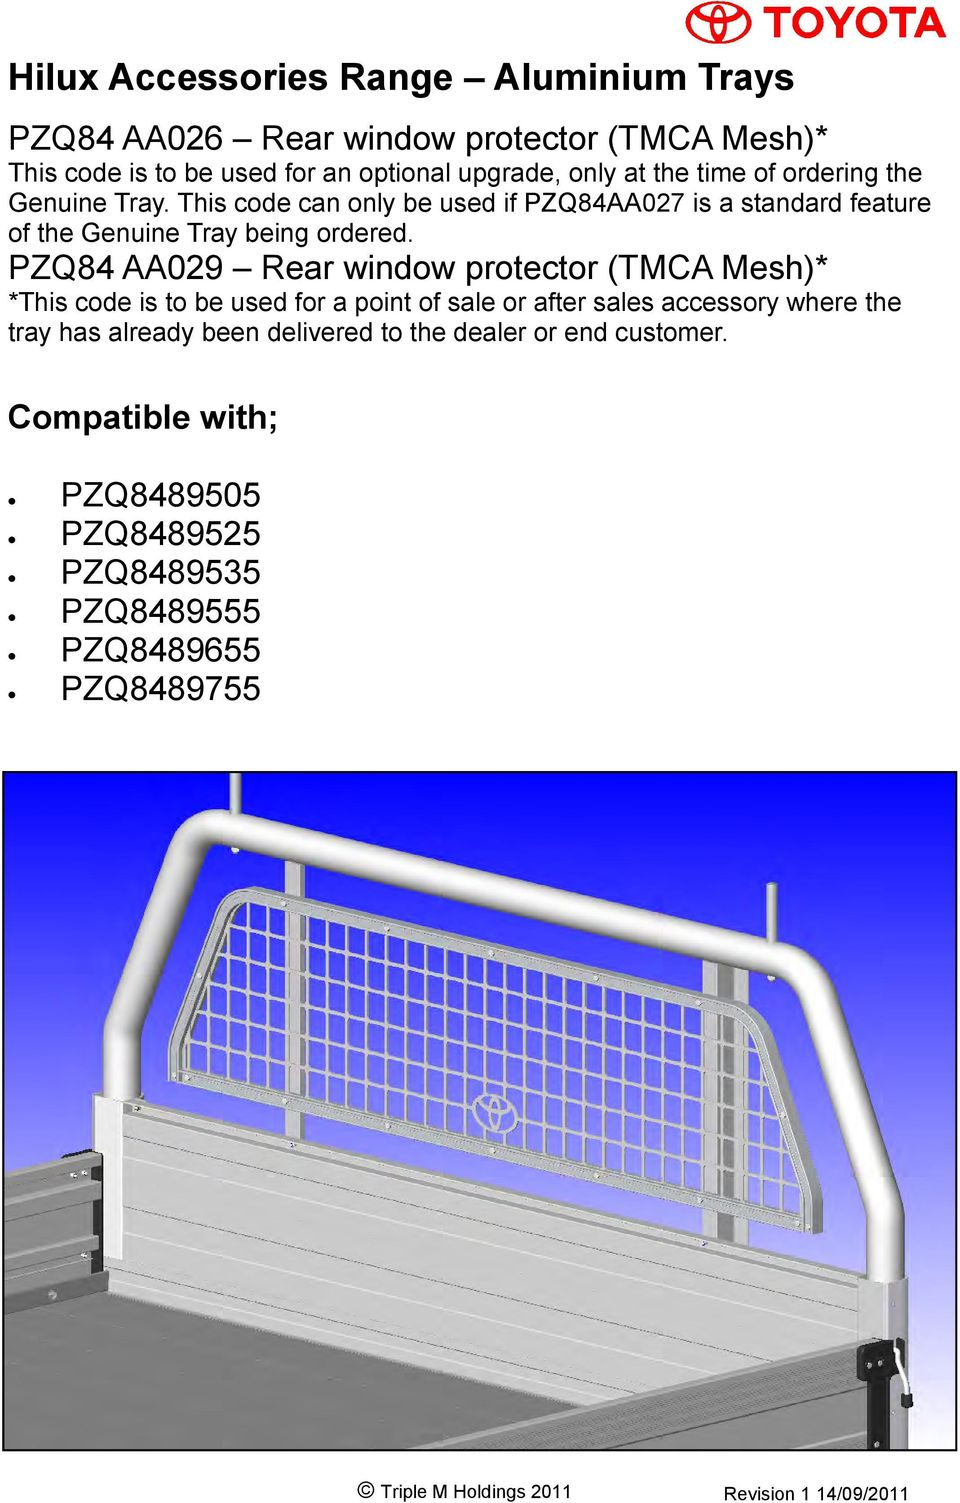 This code can only be used if PZQ84AA027 is a standard feature of the Genuine Tray being ordered.